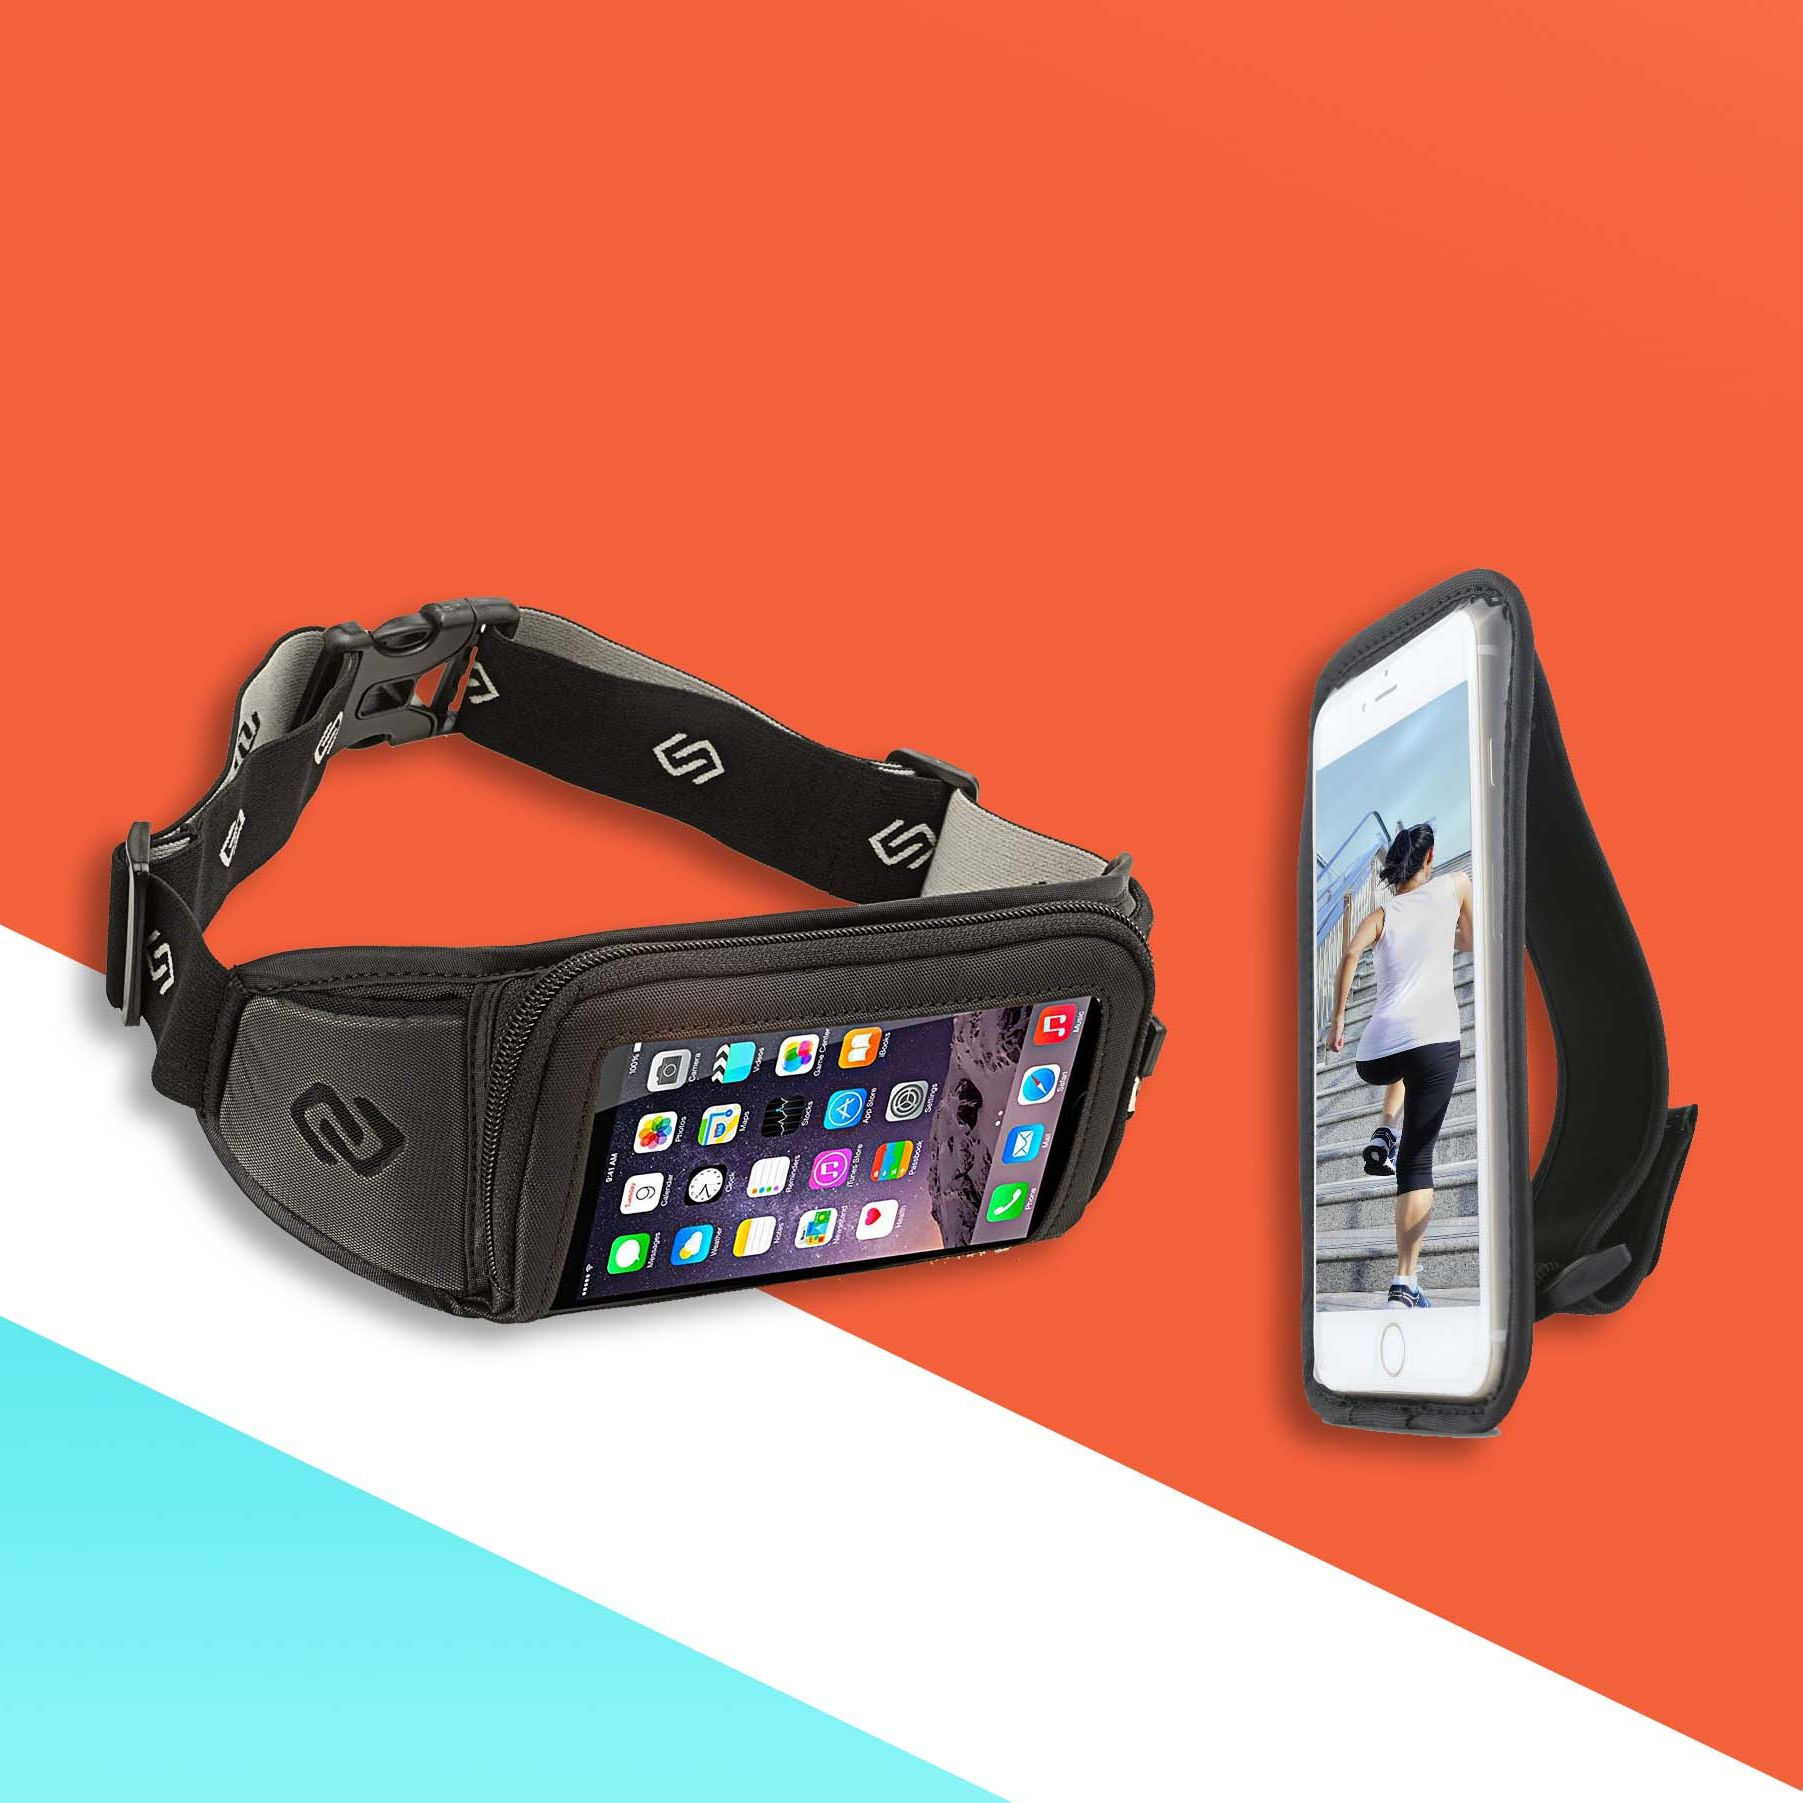 9 of the best armbands for carrying your phone on a run